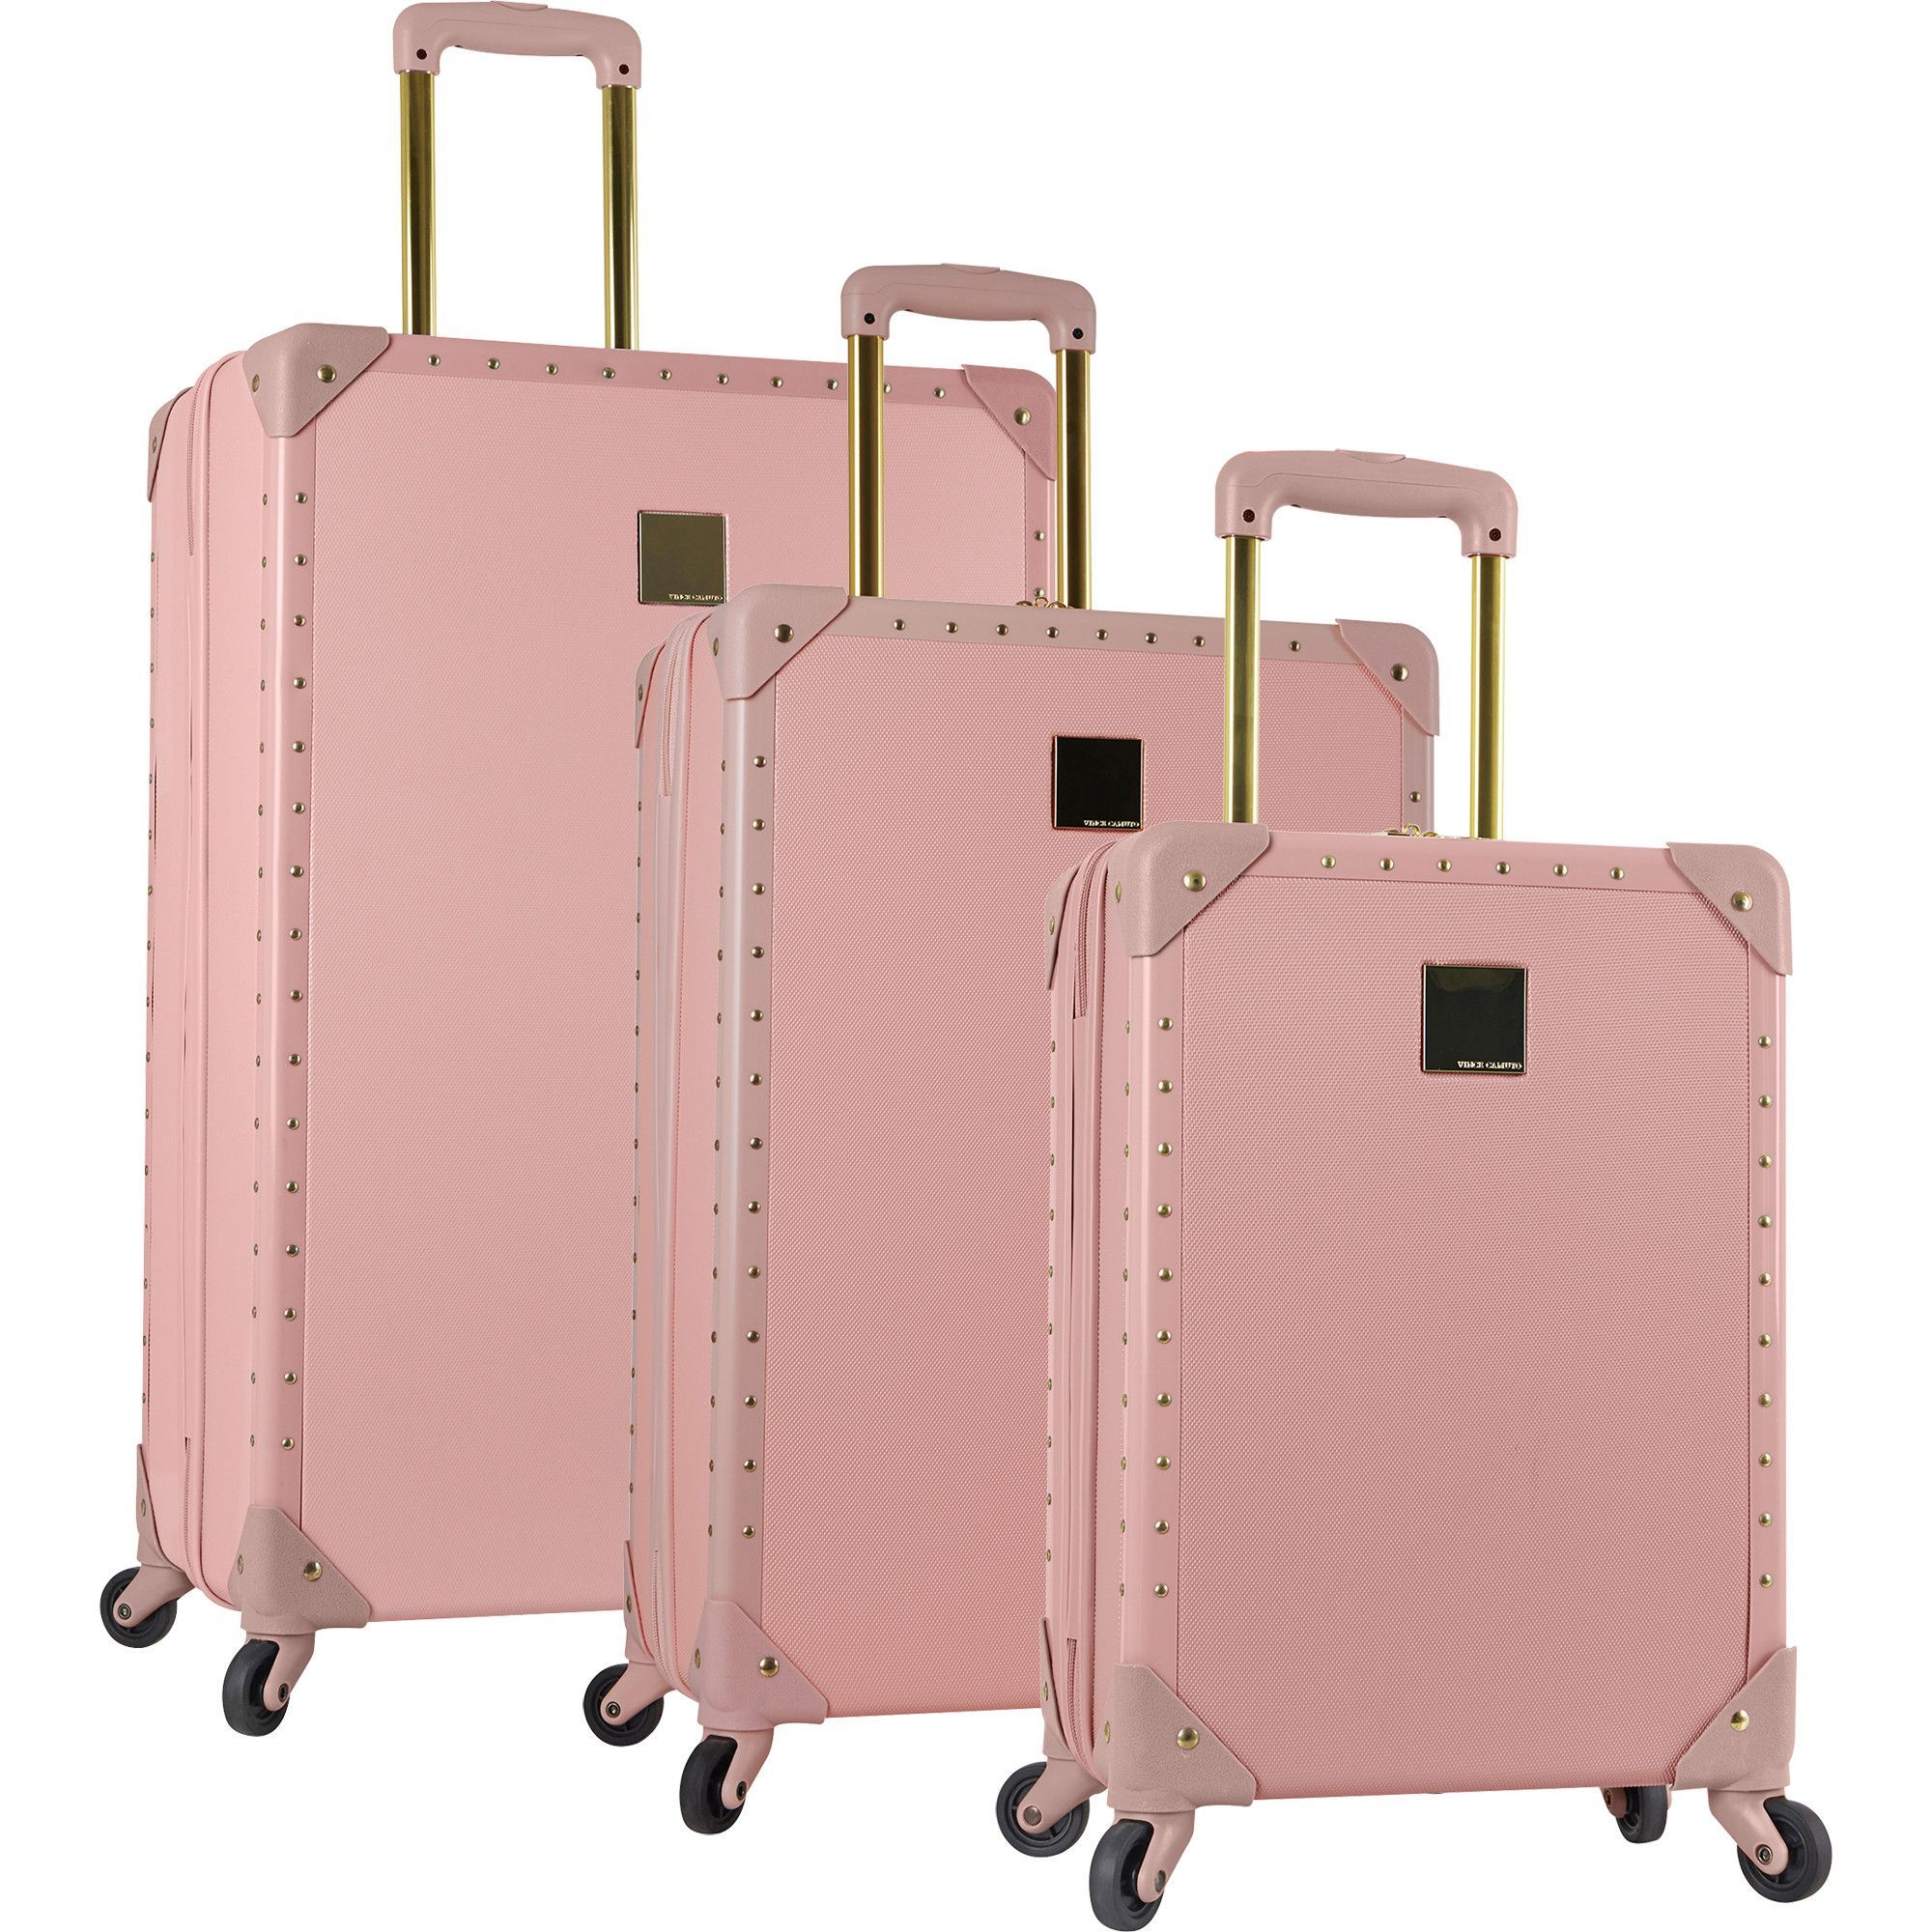 Vince Camuto Jania 3 Piece Hardside Spinner Luggage Set | Hardside ...